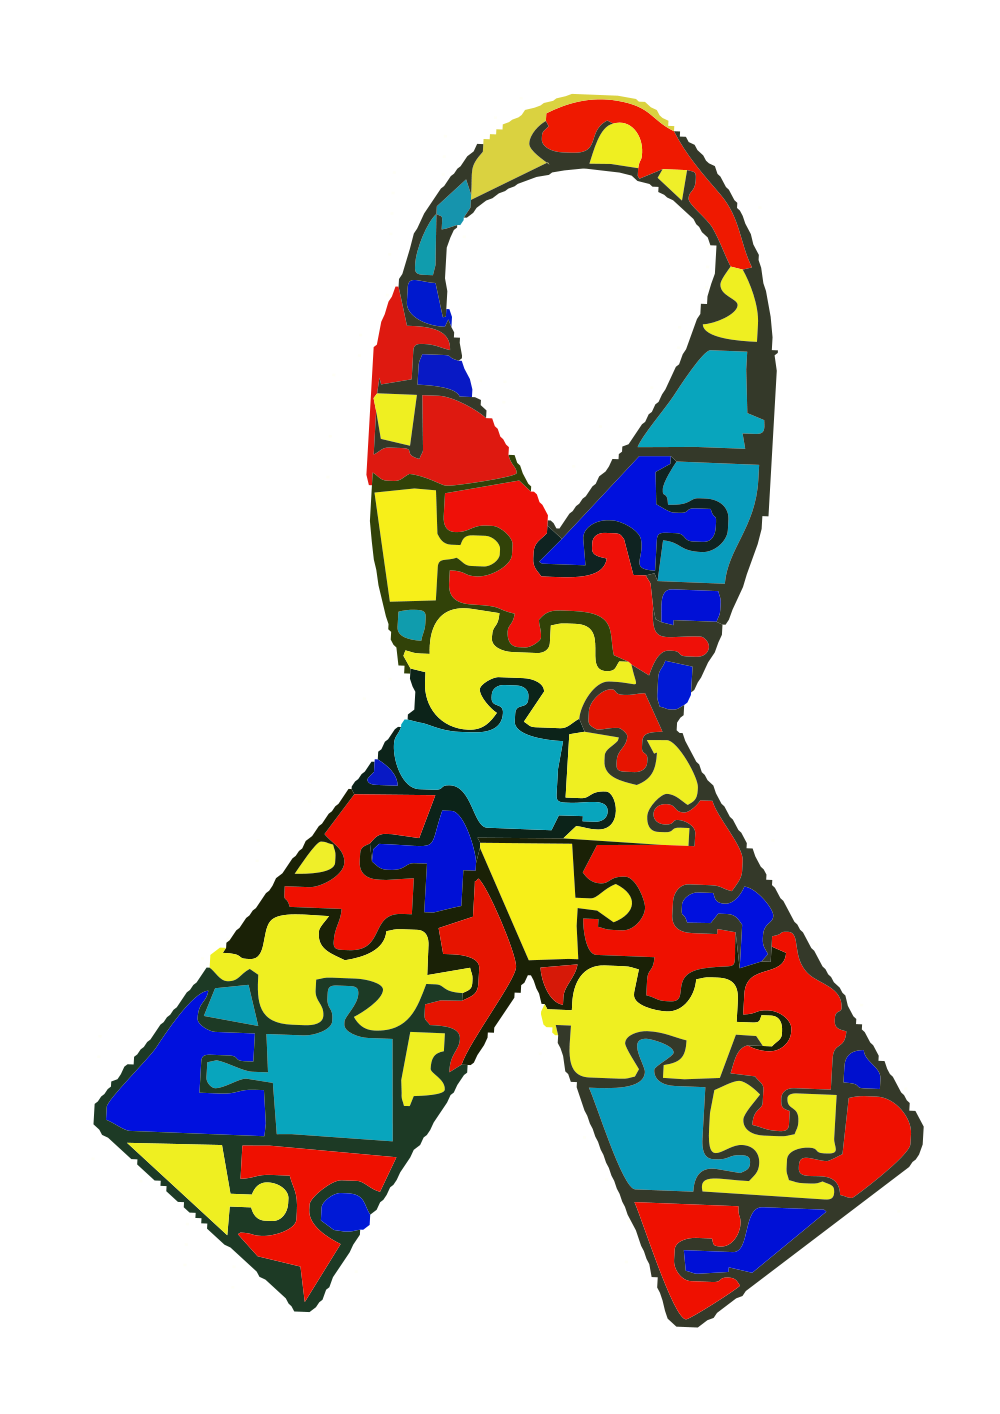 Autism images clip art image freeuse stock File:Autism.svg - Wikimedia Commons image freeuse stock